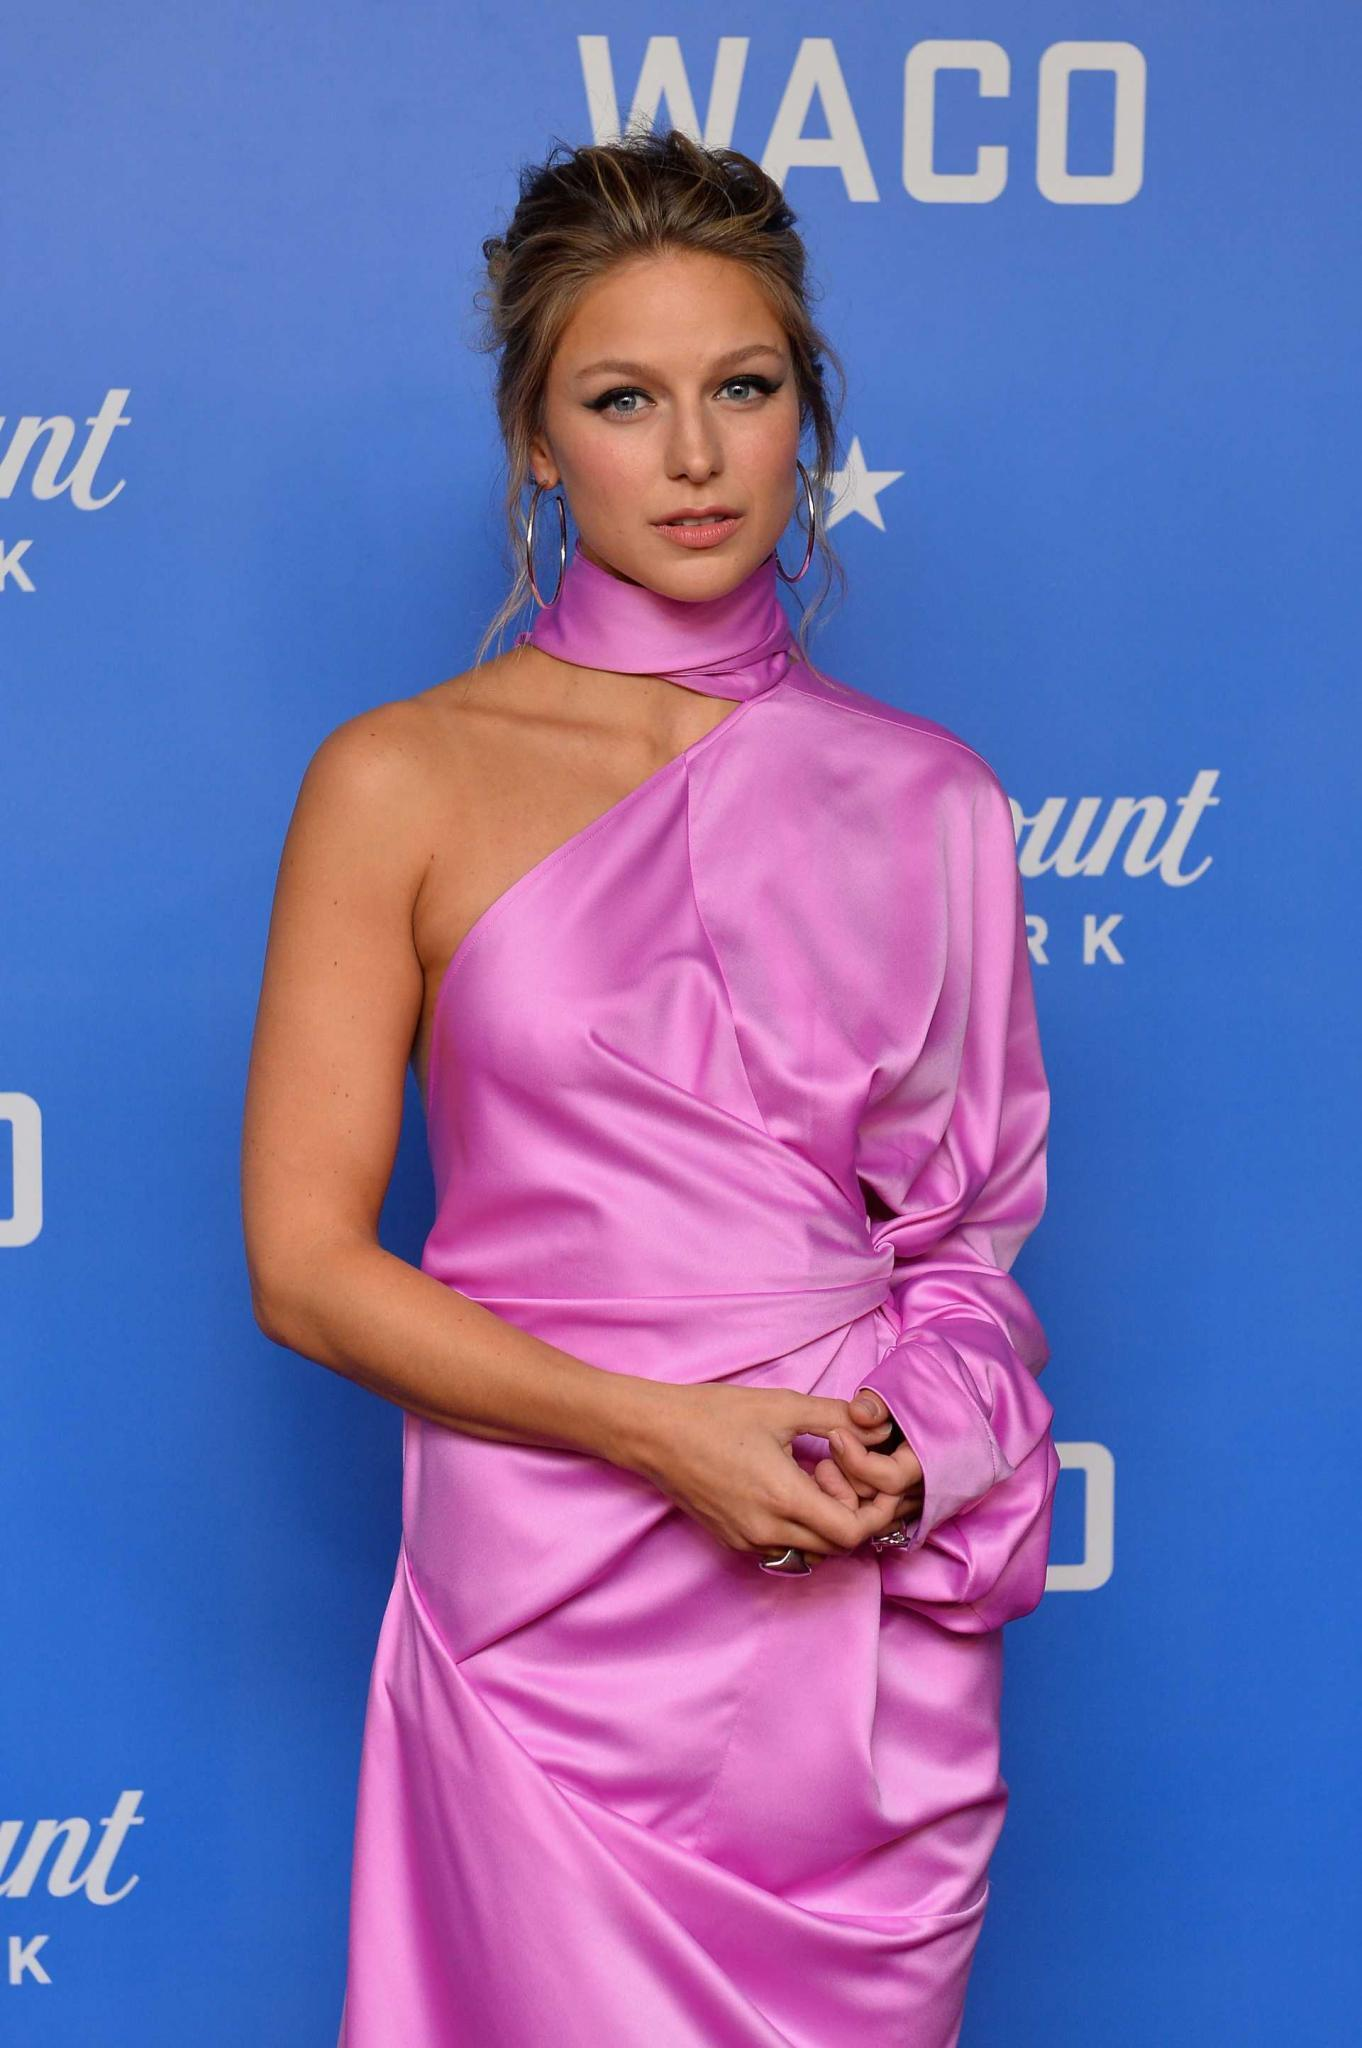 Melissa Benoist at the Premiere of 'Waco' in NYC